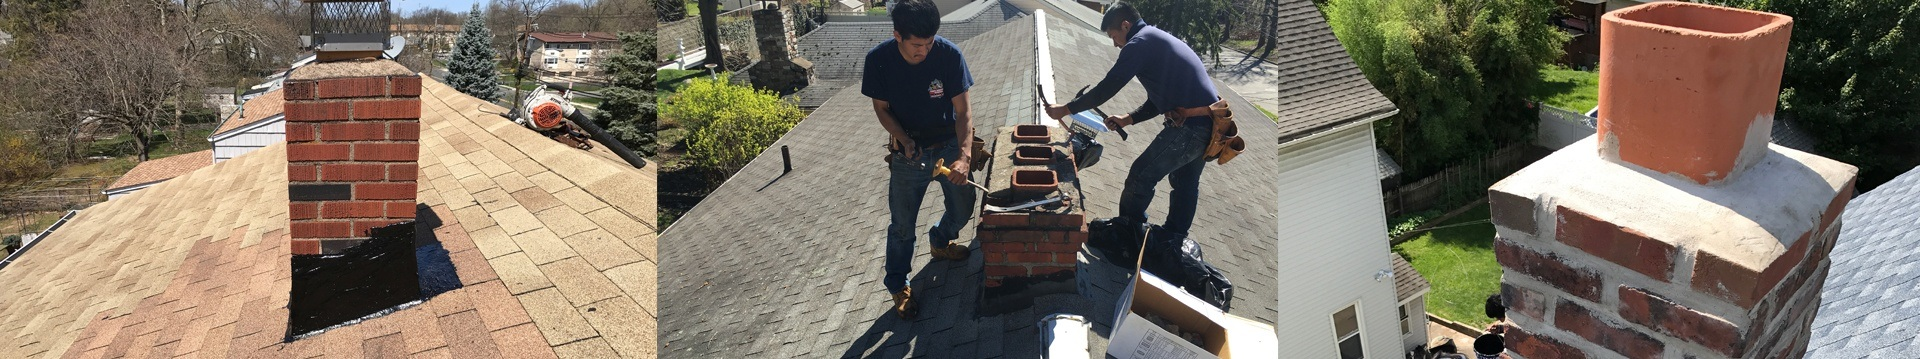 Chimney Repair Nj Three Brothers Roofing Contractors